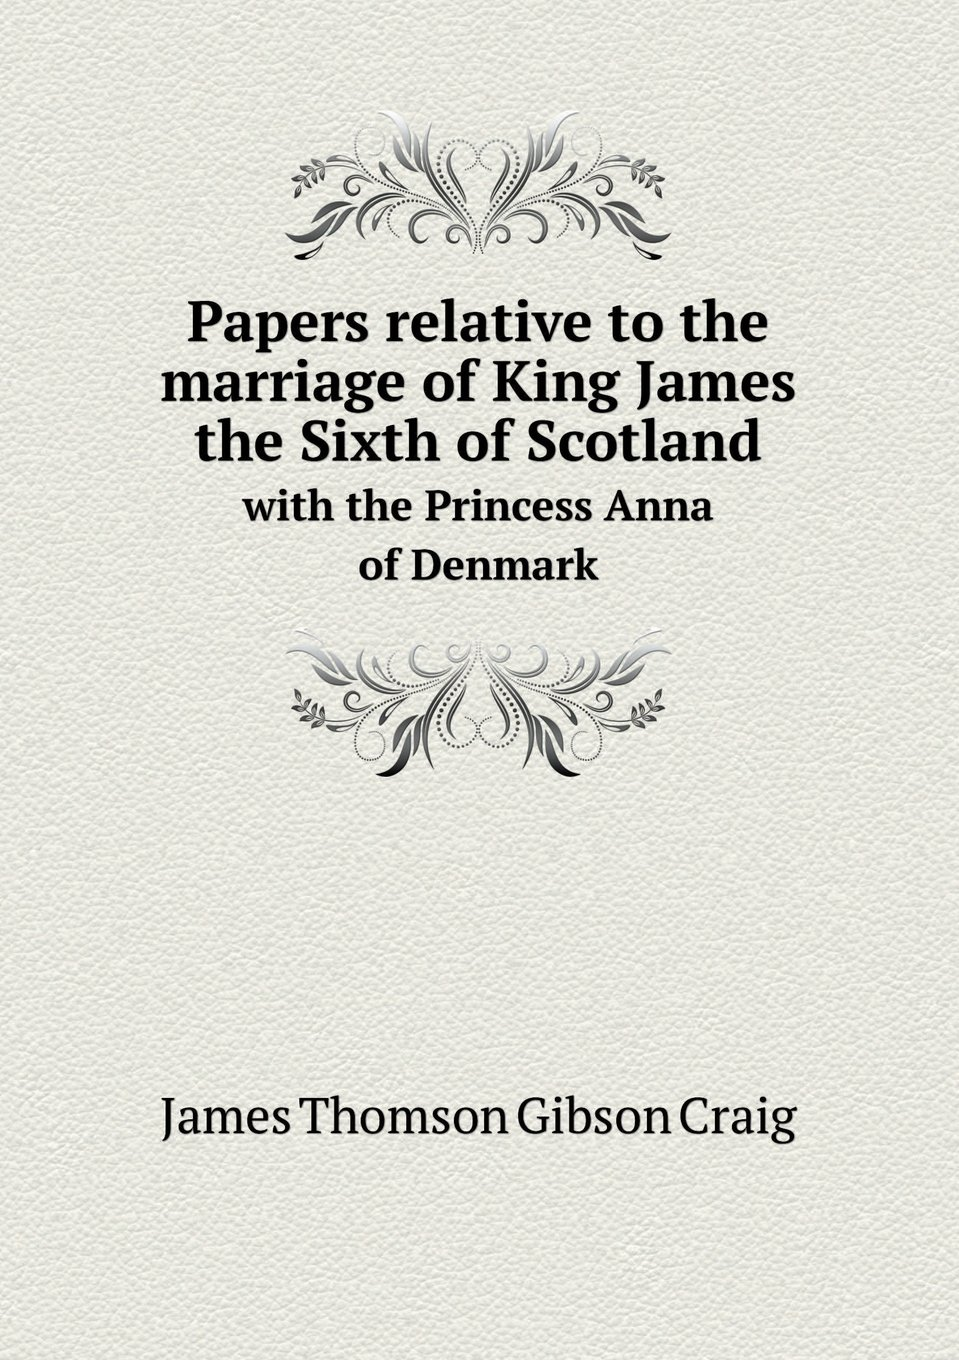 Papers relative to the marriage of King James the Sixth of Scotland with the Princess Anna of Denmark PDF